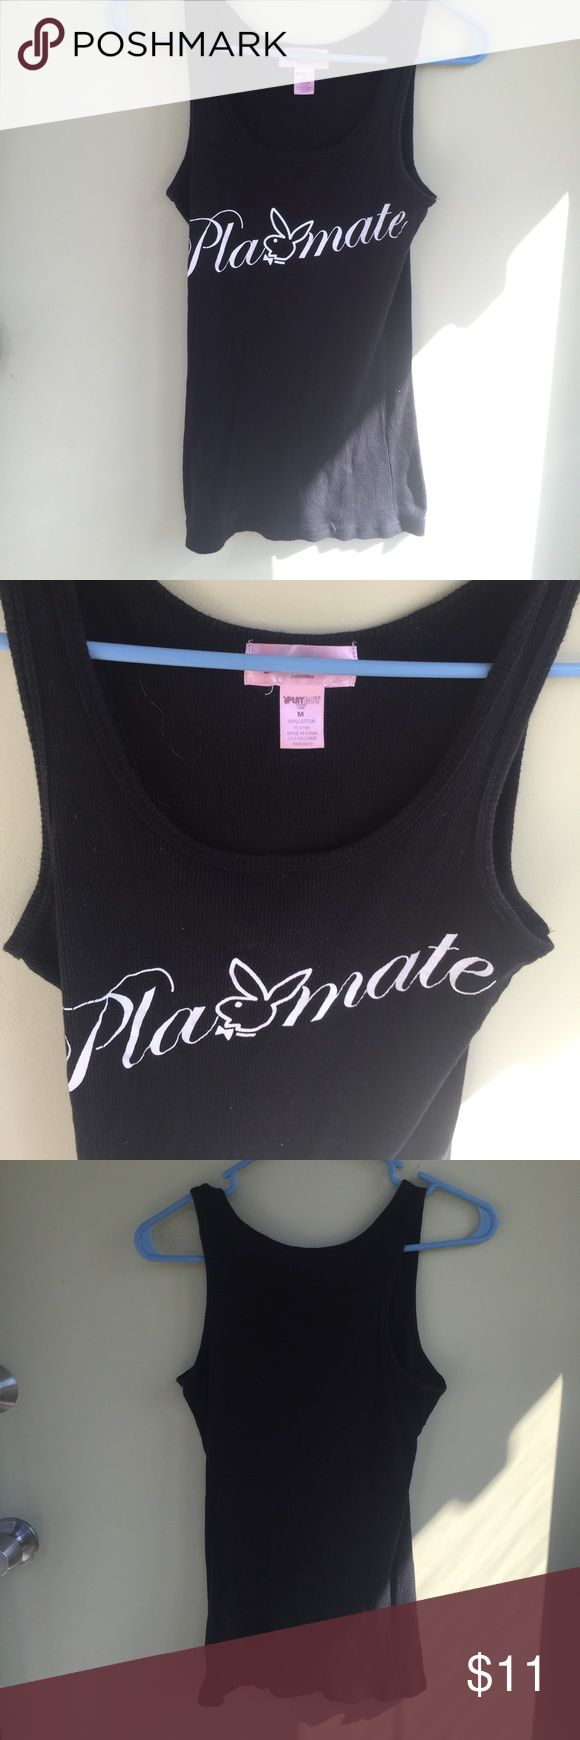 Playboy Playmate Bunny black ribbed tank Official PLAYBOY PLAYMATE clothing. this black ribbed tank is super cute, comfortable and stretchy. can be worn with jeans, casually or to sleep. only been worn a few times, in like new condition.  SIZE MEDIUM  tags: #playboy #playmate #hughhefner #bunny #playboybunny #ribbed #black #wifebeater #comfortable #pajama #intimate #cute #casual #likenew #euc Tops Tank Tops